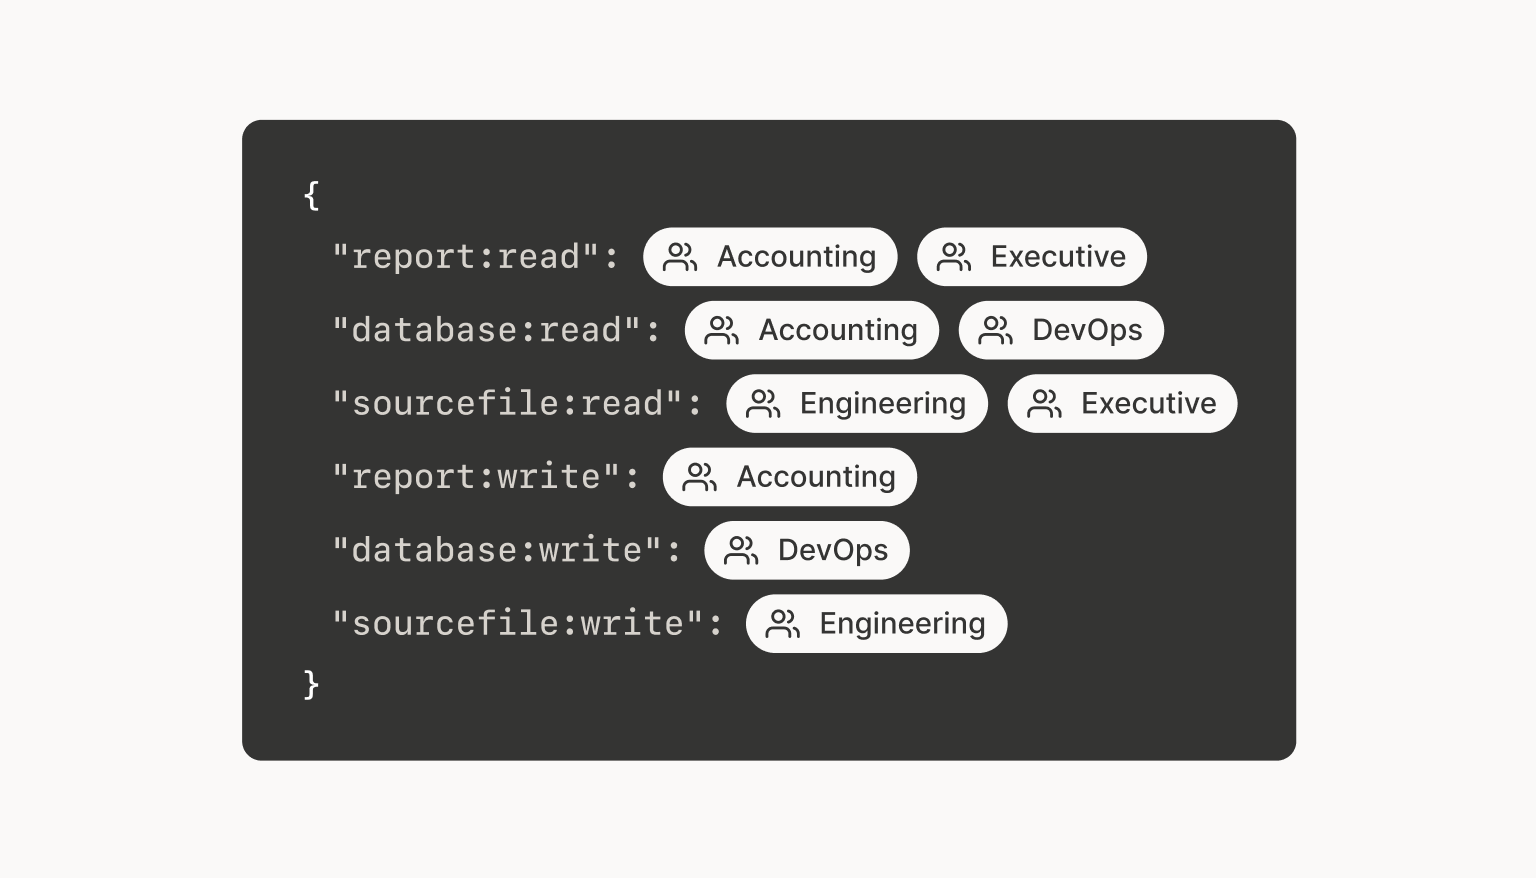 A code snippet that demonstrates how the user groups we've just defined can be assigned permissions related to their member's roles instead of file types. For example, the Accounting group can read the database, but only the DevOps group can write to it.